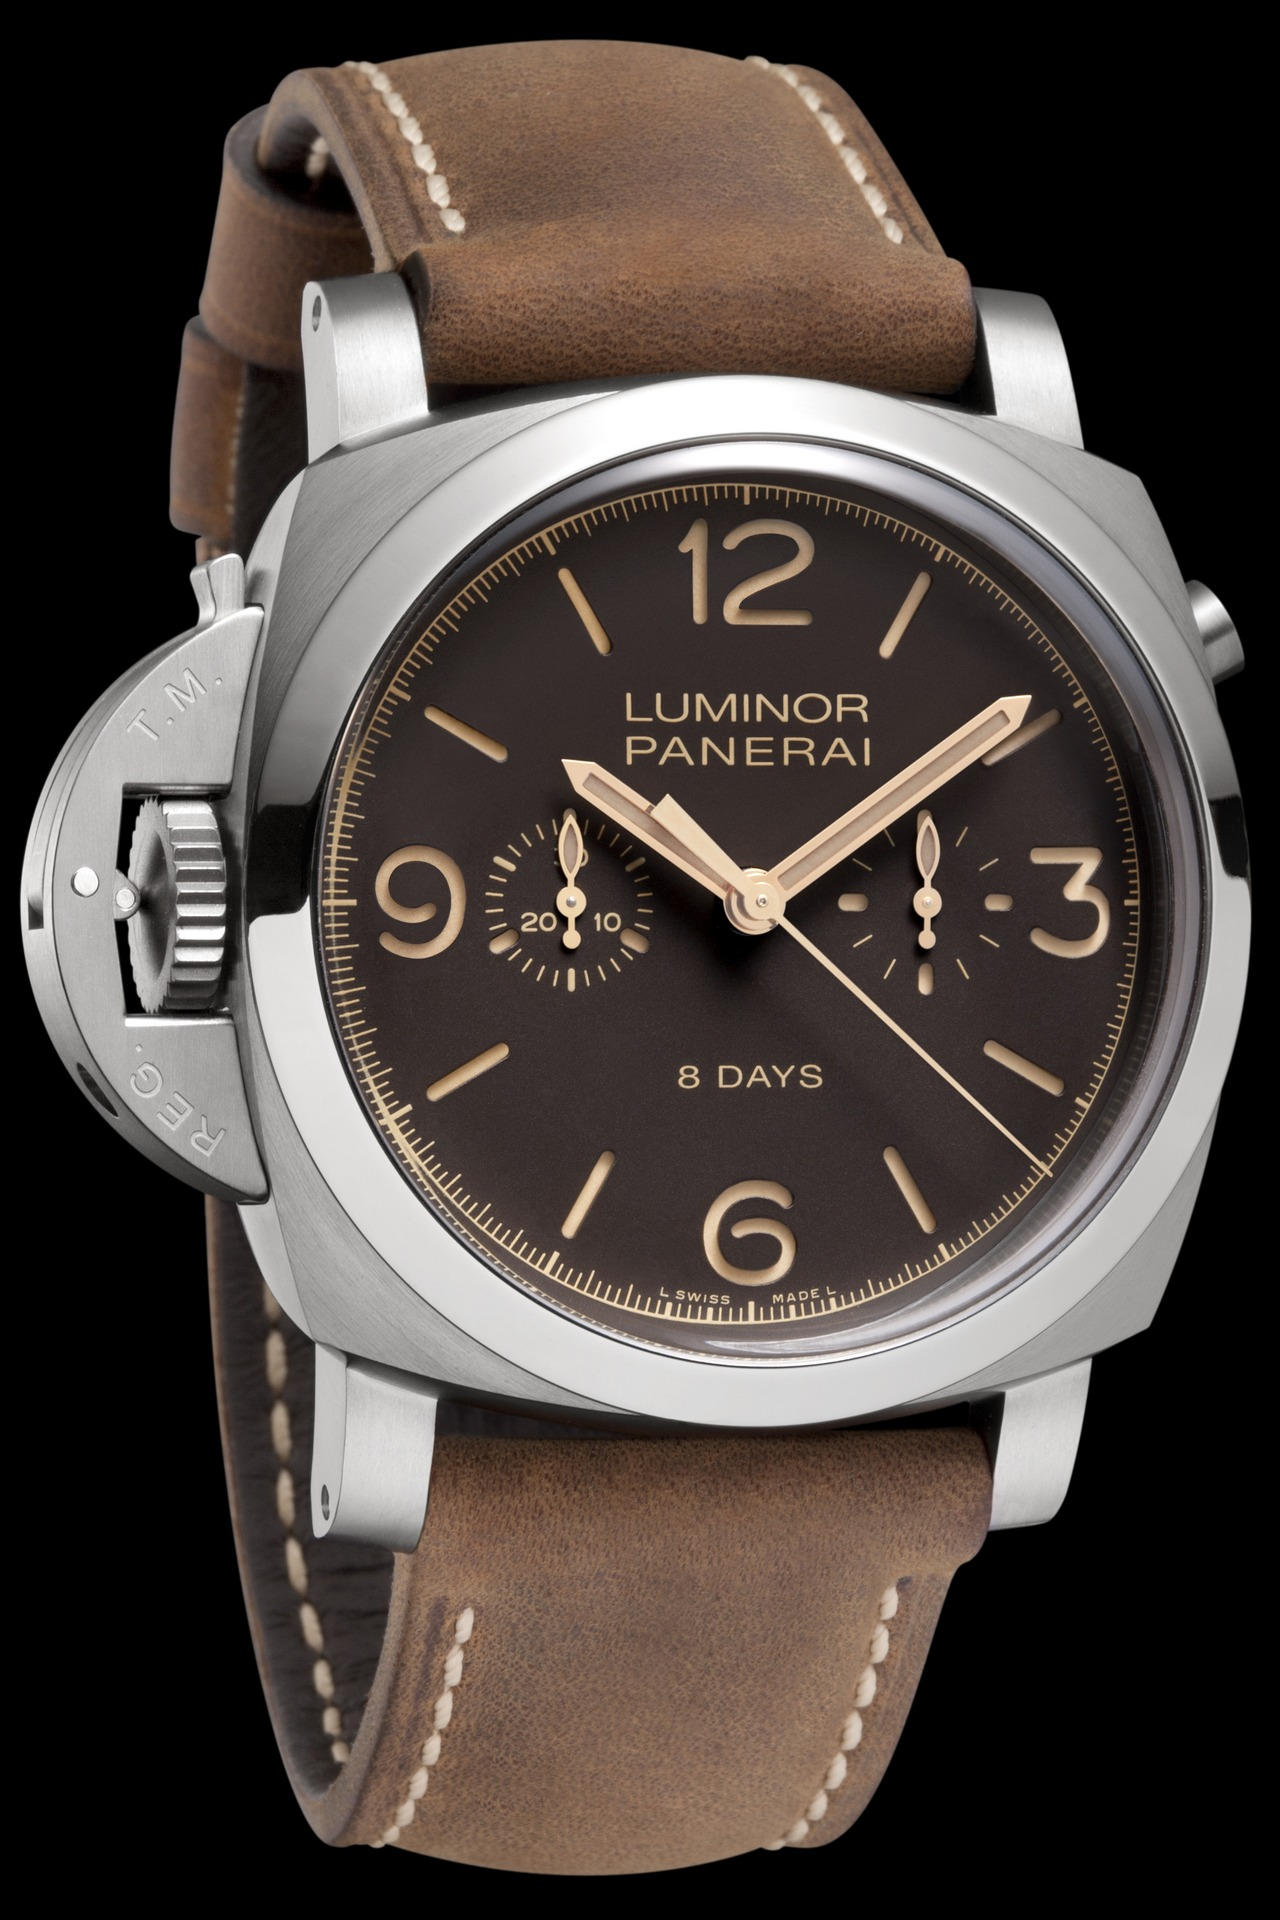 sihh-2014-officine-panerai-luminor-1950-chrono-monopulsante-left-handed-8-days-titanio-47mm-limited-edition-pam579-prezzo-price_0-100_3